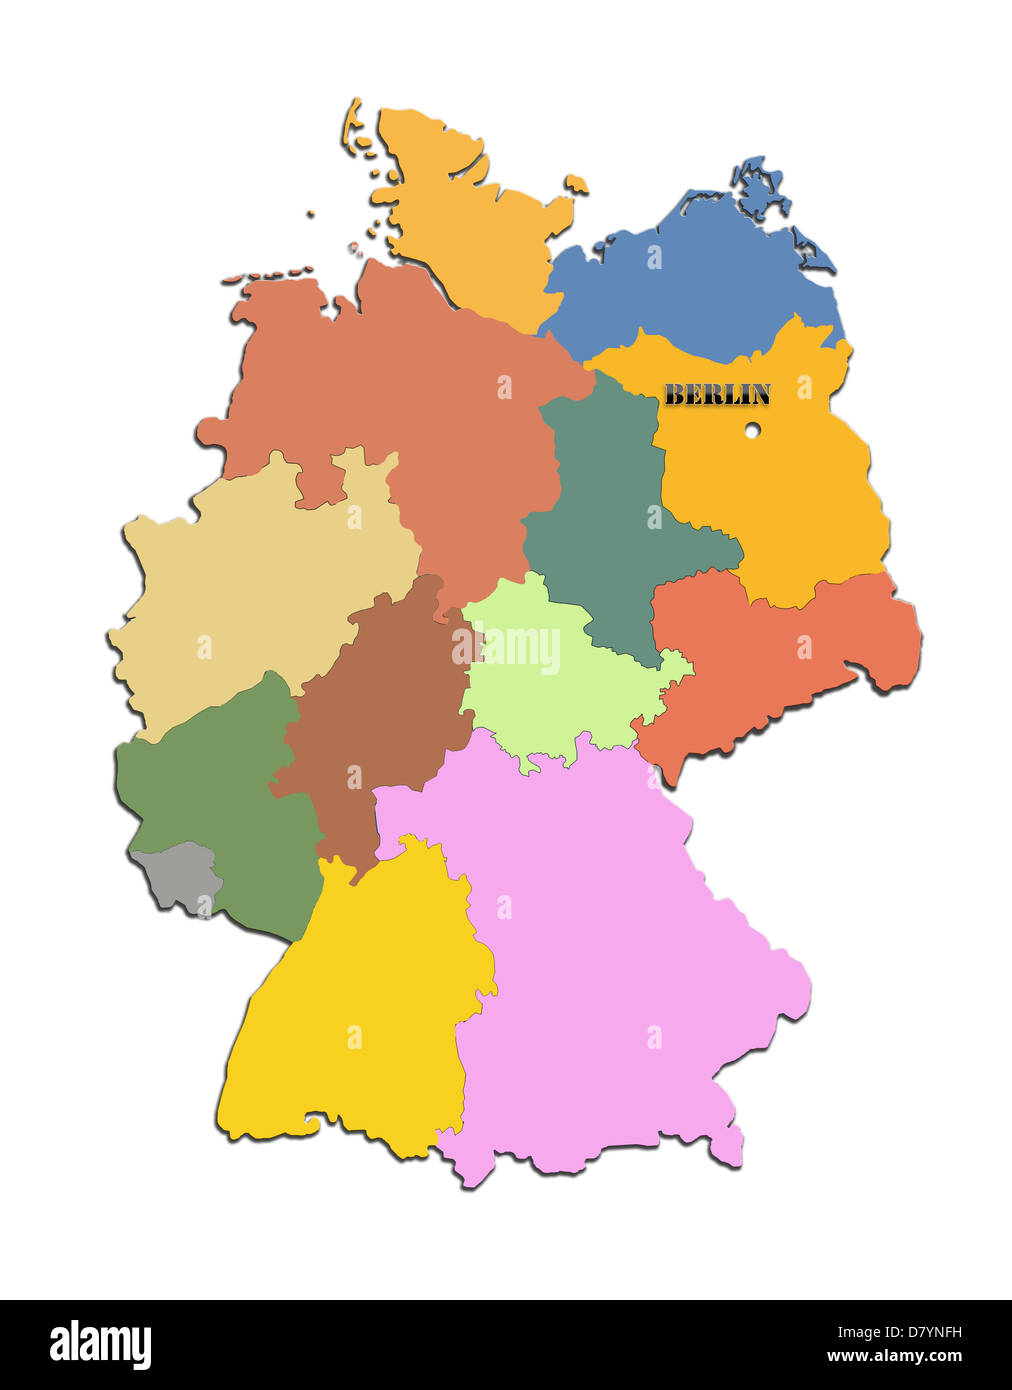 Colored silhouette of the map of Germany with regions - Stock Image